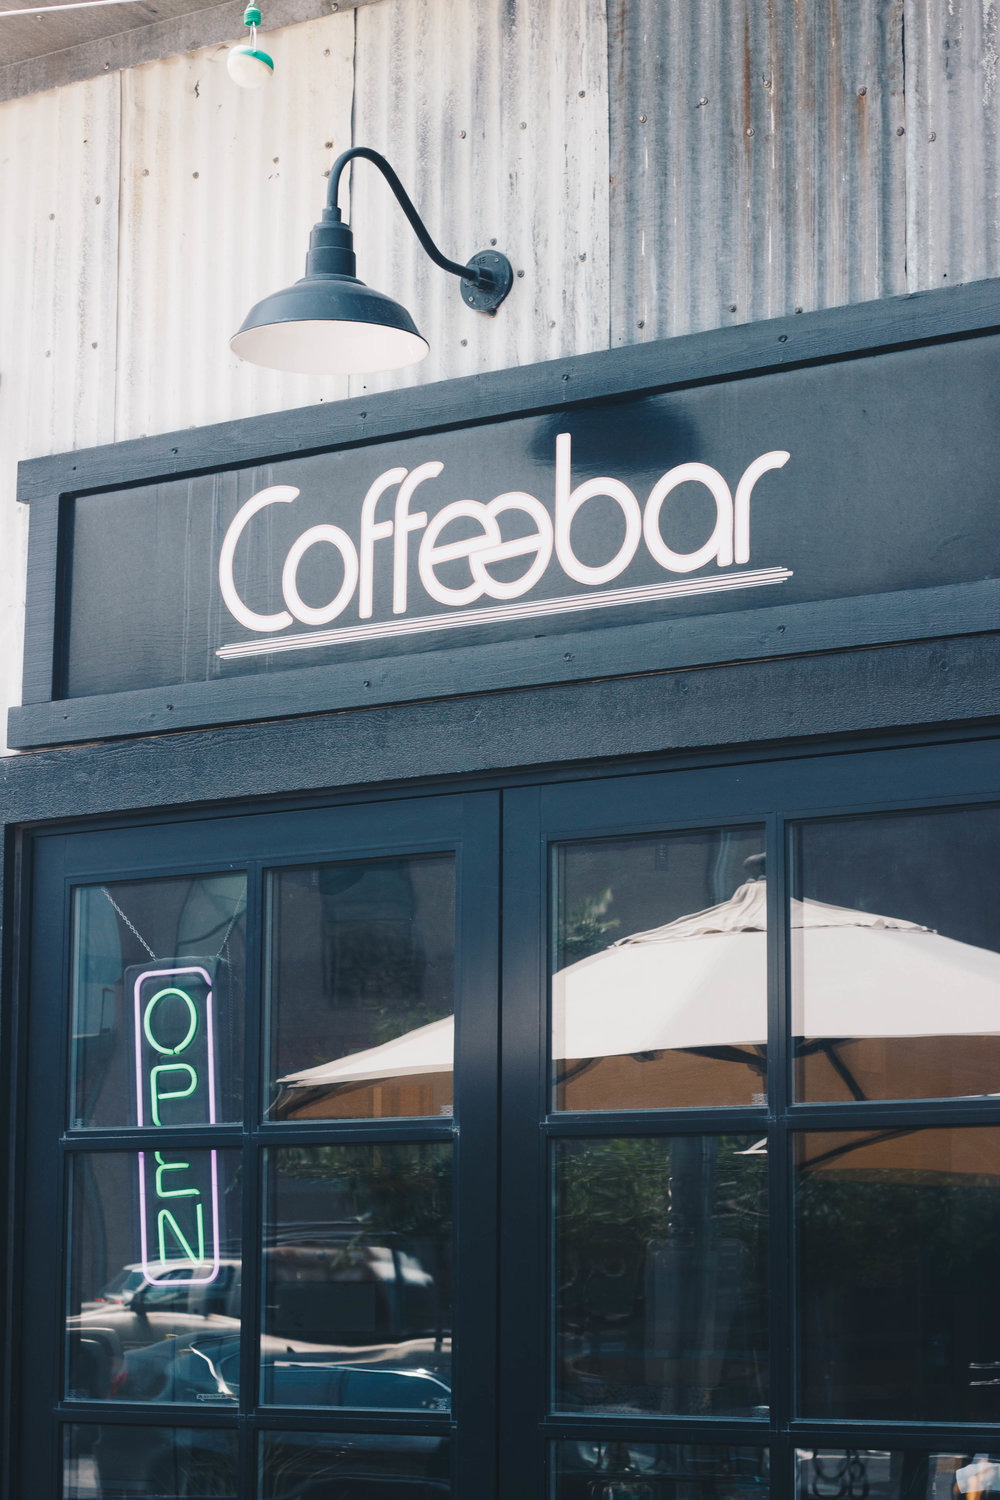 Coffeebar is a perfect summation for North Lake Tahoe/Truckee. It's relaxed, it's welcoming, and a little bit eccentric.